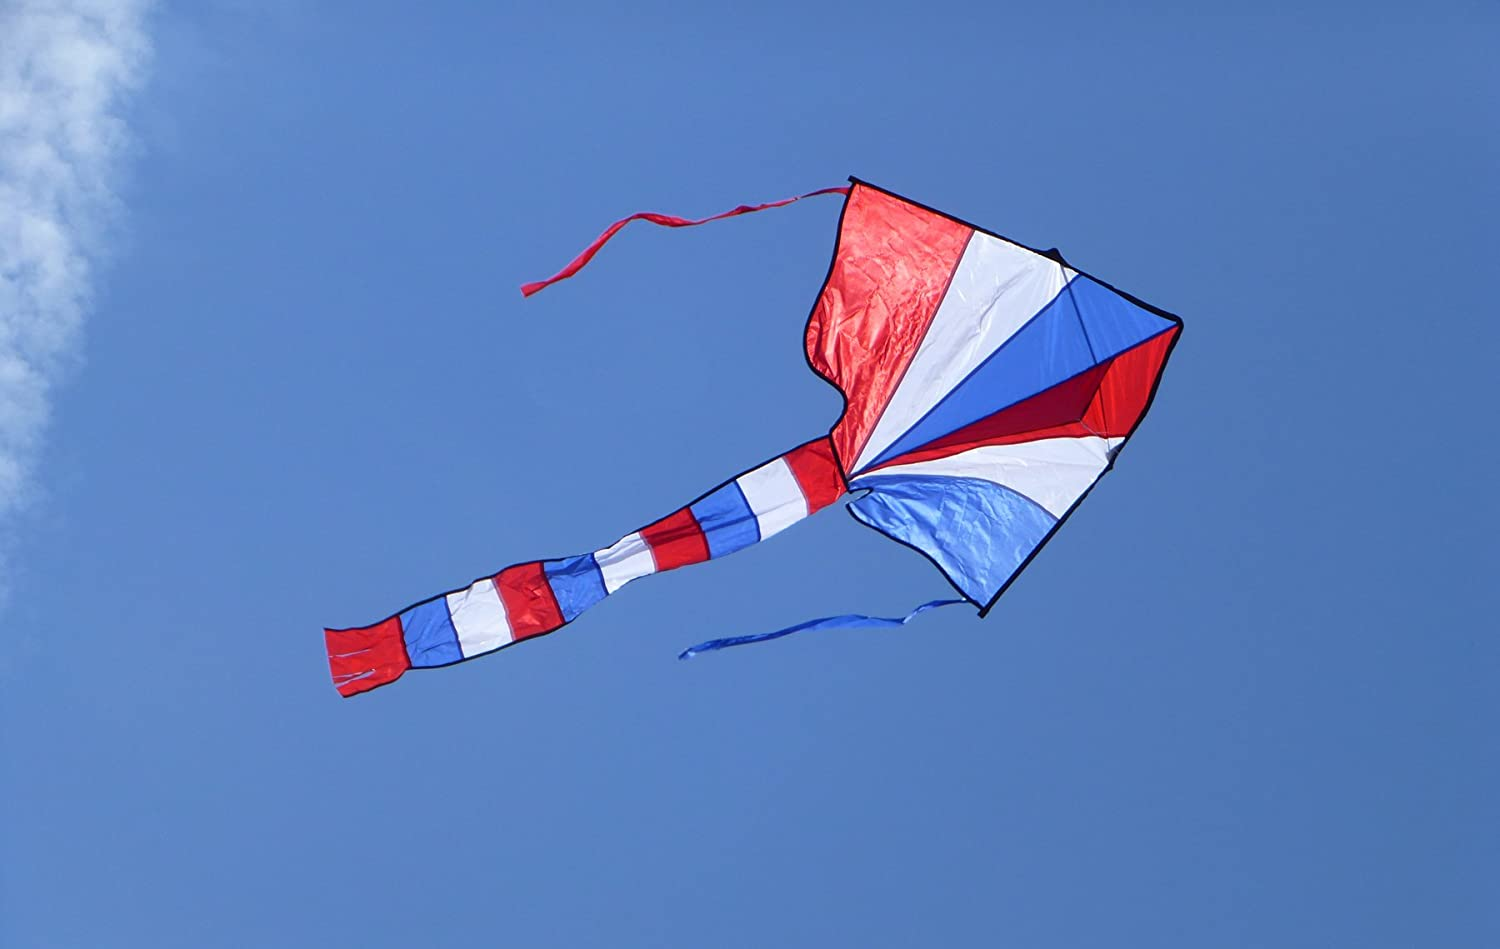 Includes Kite Line and Bag In the Breeze Red Single Line Ripstop Fabric Great Beginner Kite White /& Blue 46 Inch Fly-Hi Delta Kite